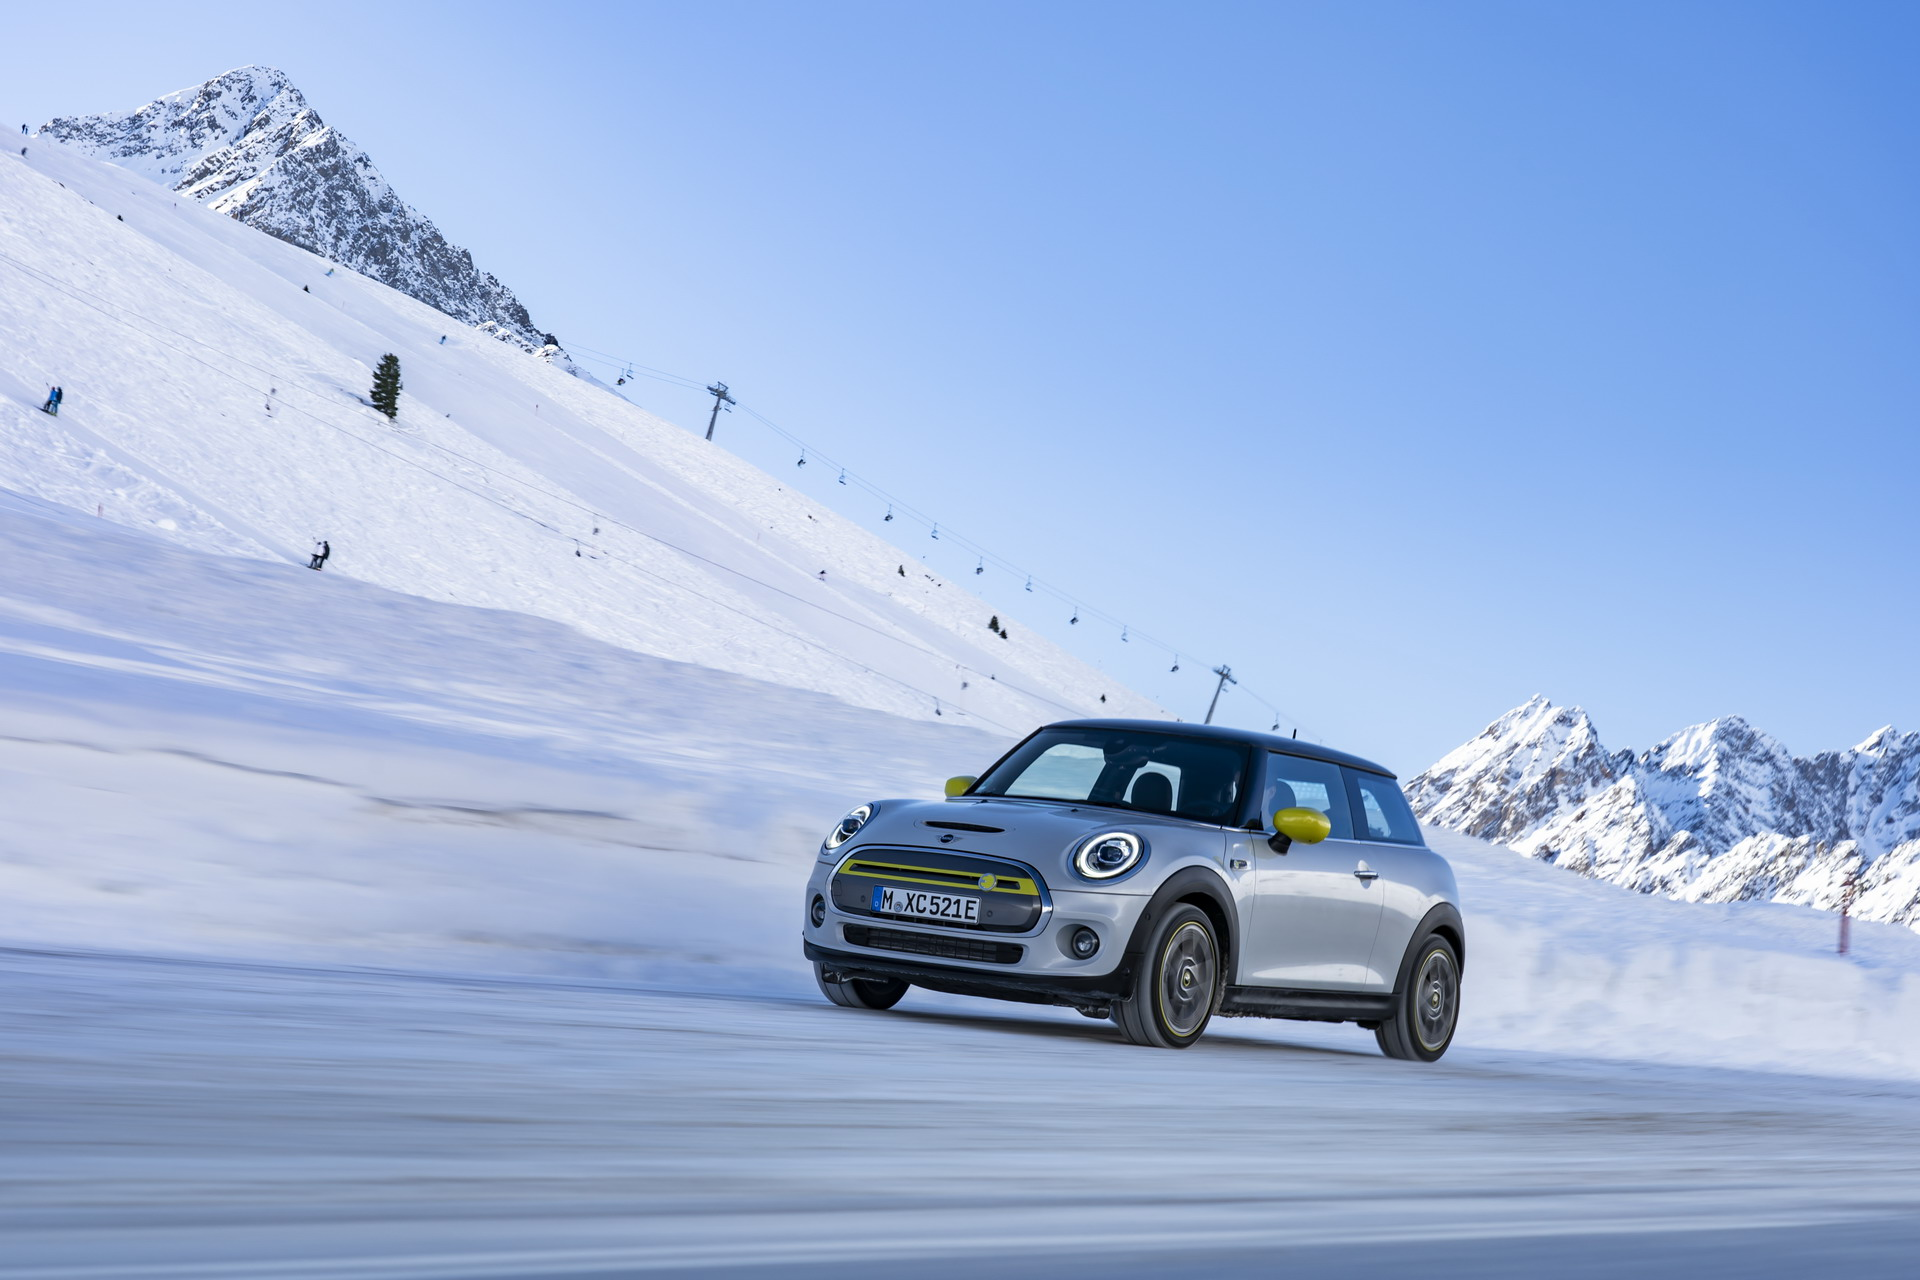 With the MINI Electric in Alps: from Munich to Sölden without recharge